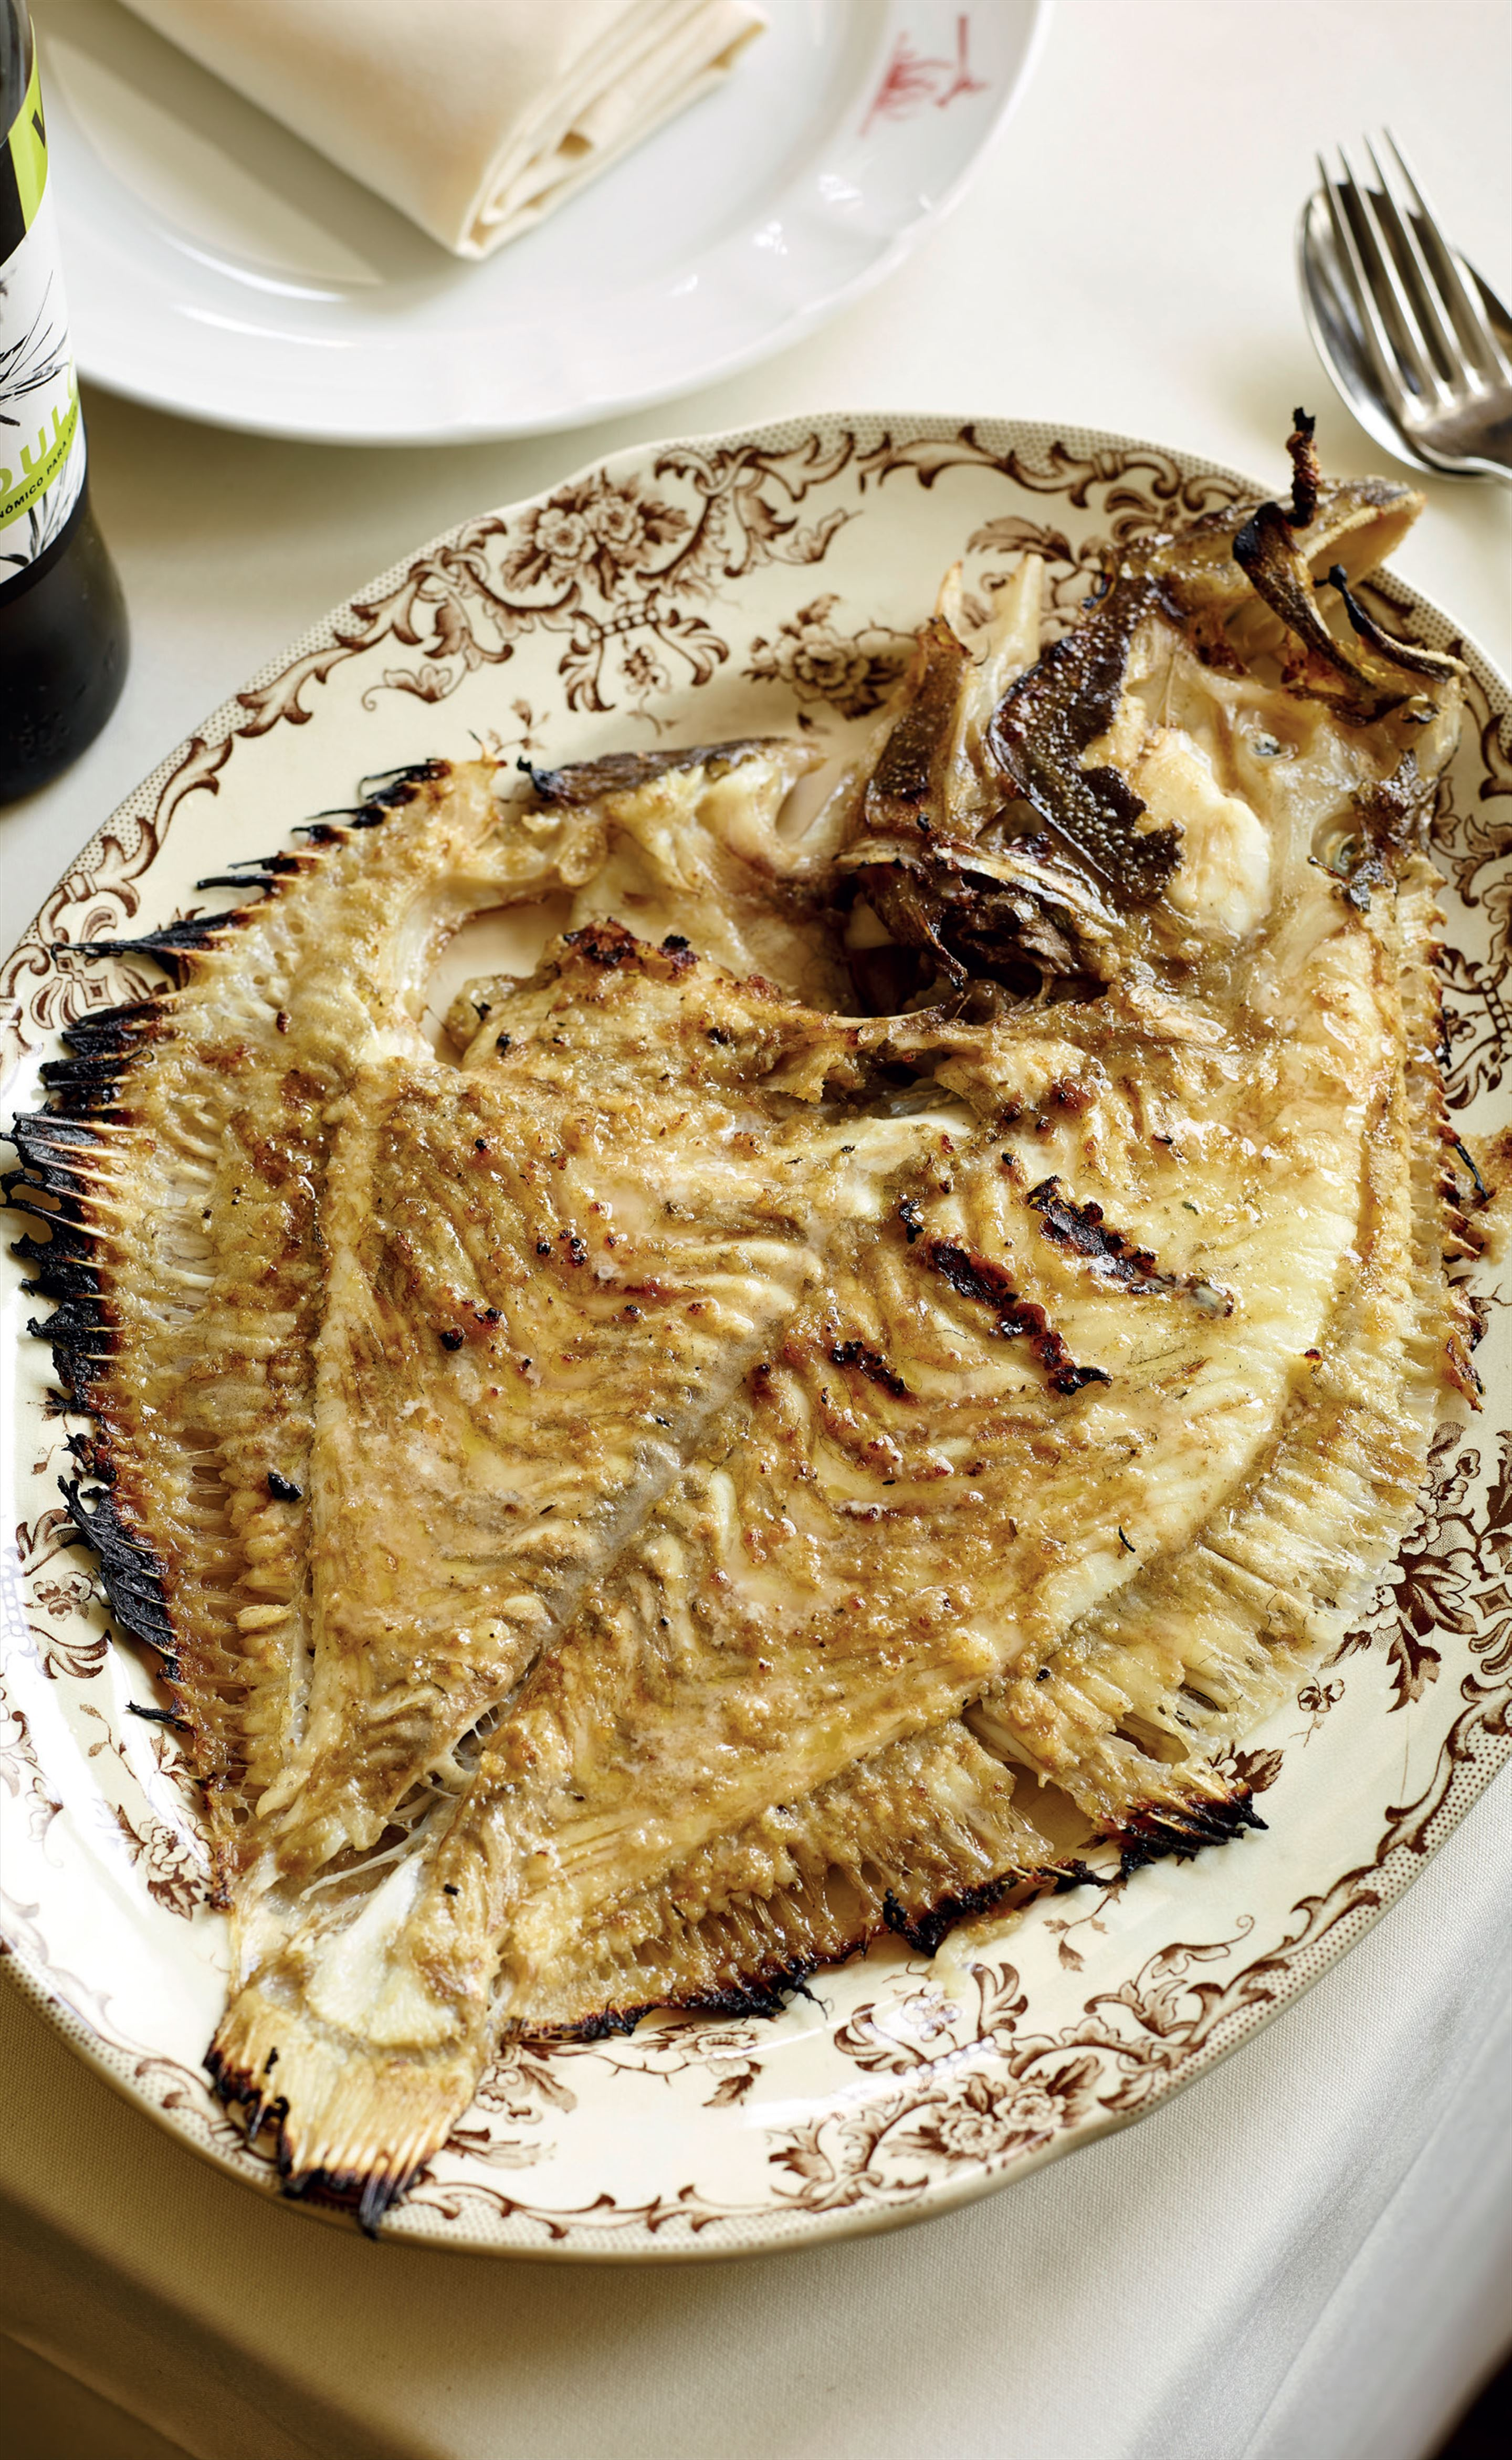 Grilled turbot with vinegar and oil